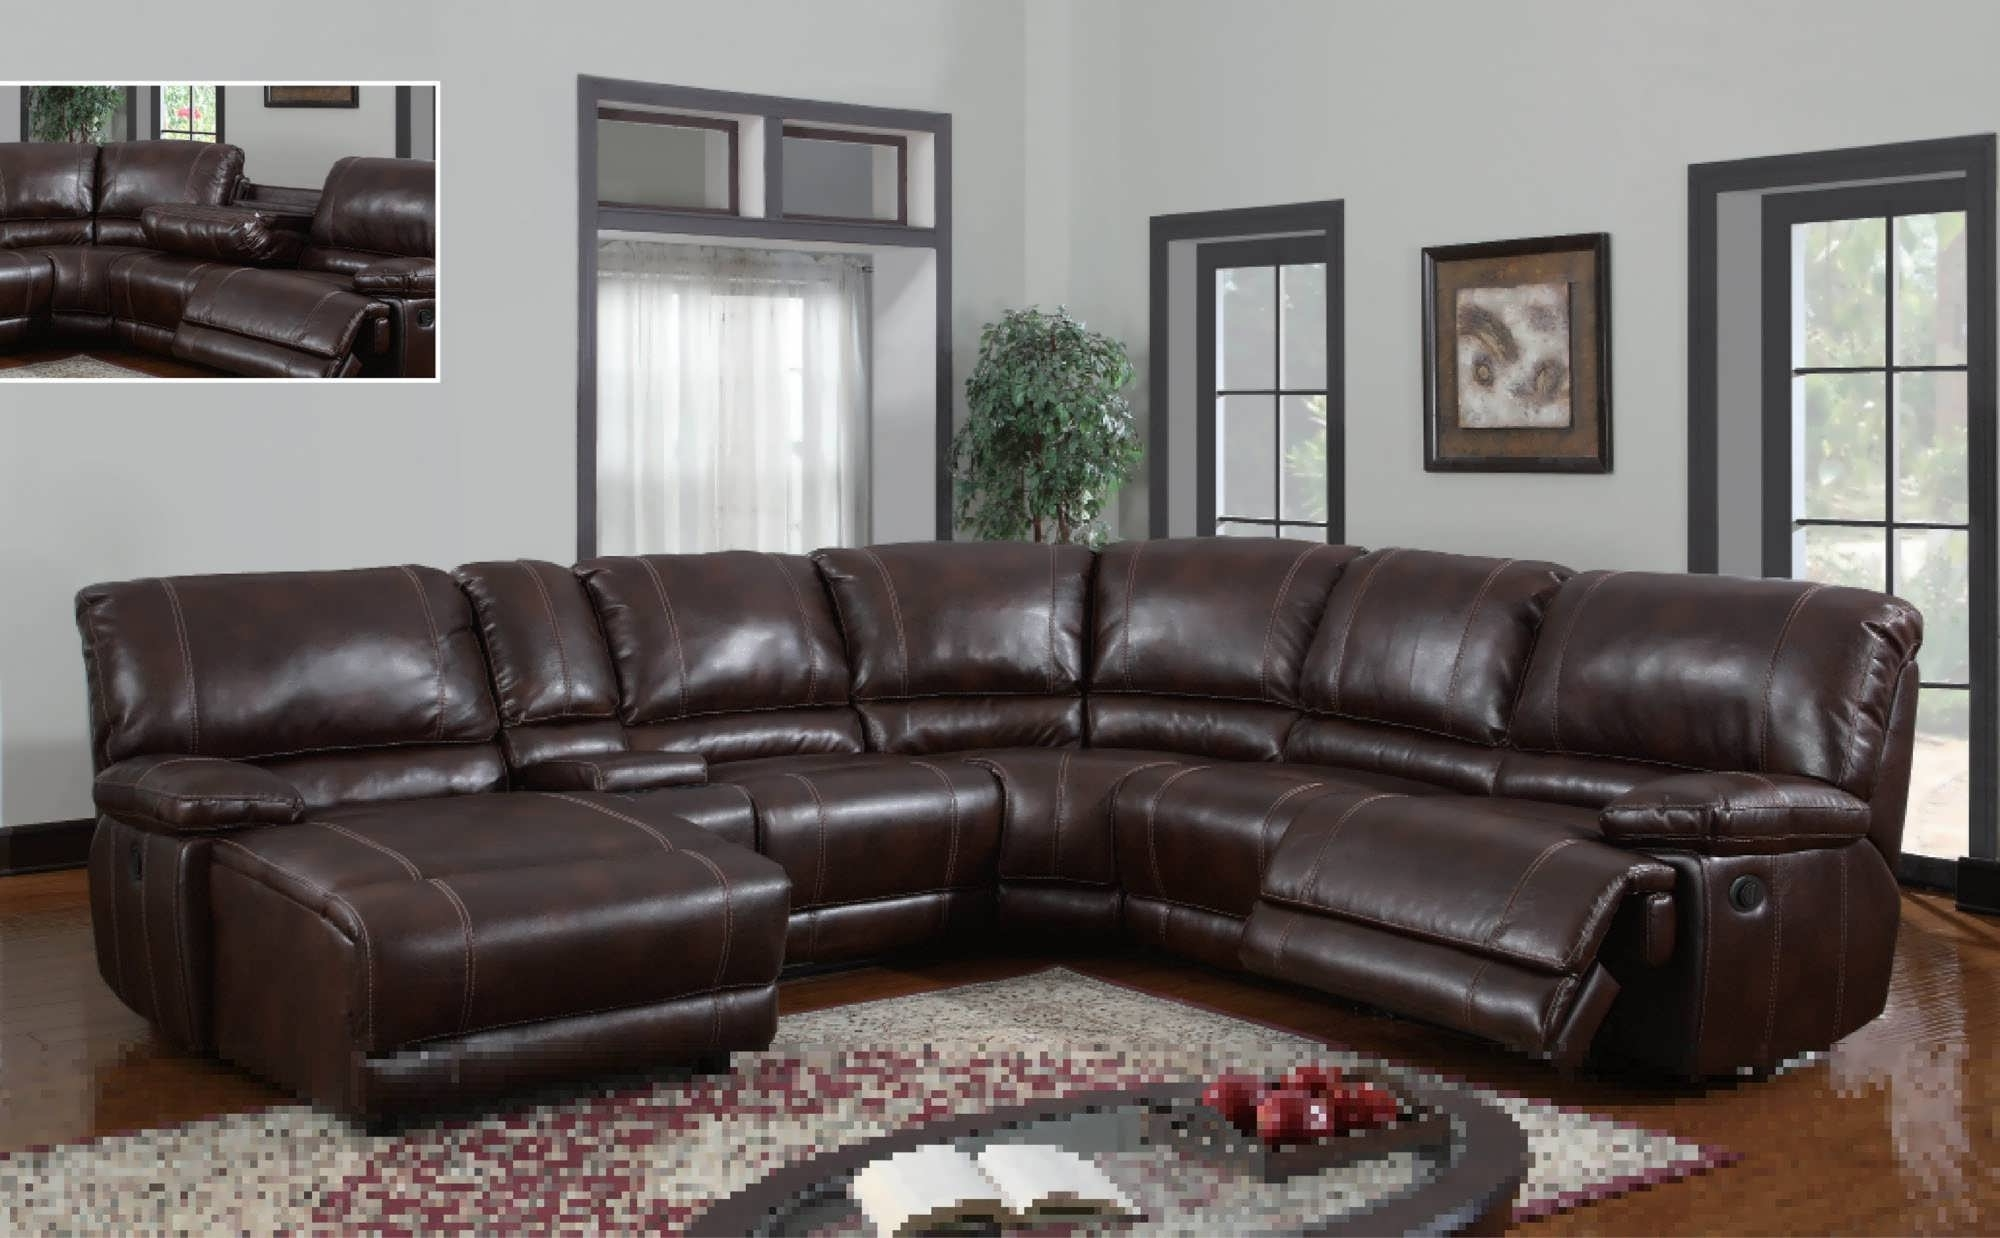 Sofa : Small Leather Sectional Modern Sectional Living Room In Fashionable Reclining Sectionals With Chaise (View 13 of 15)